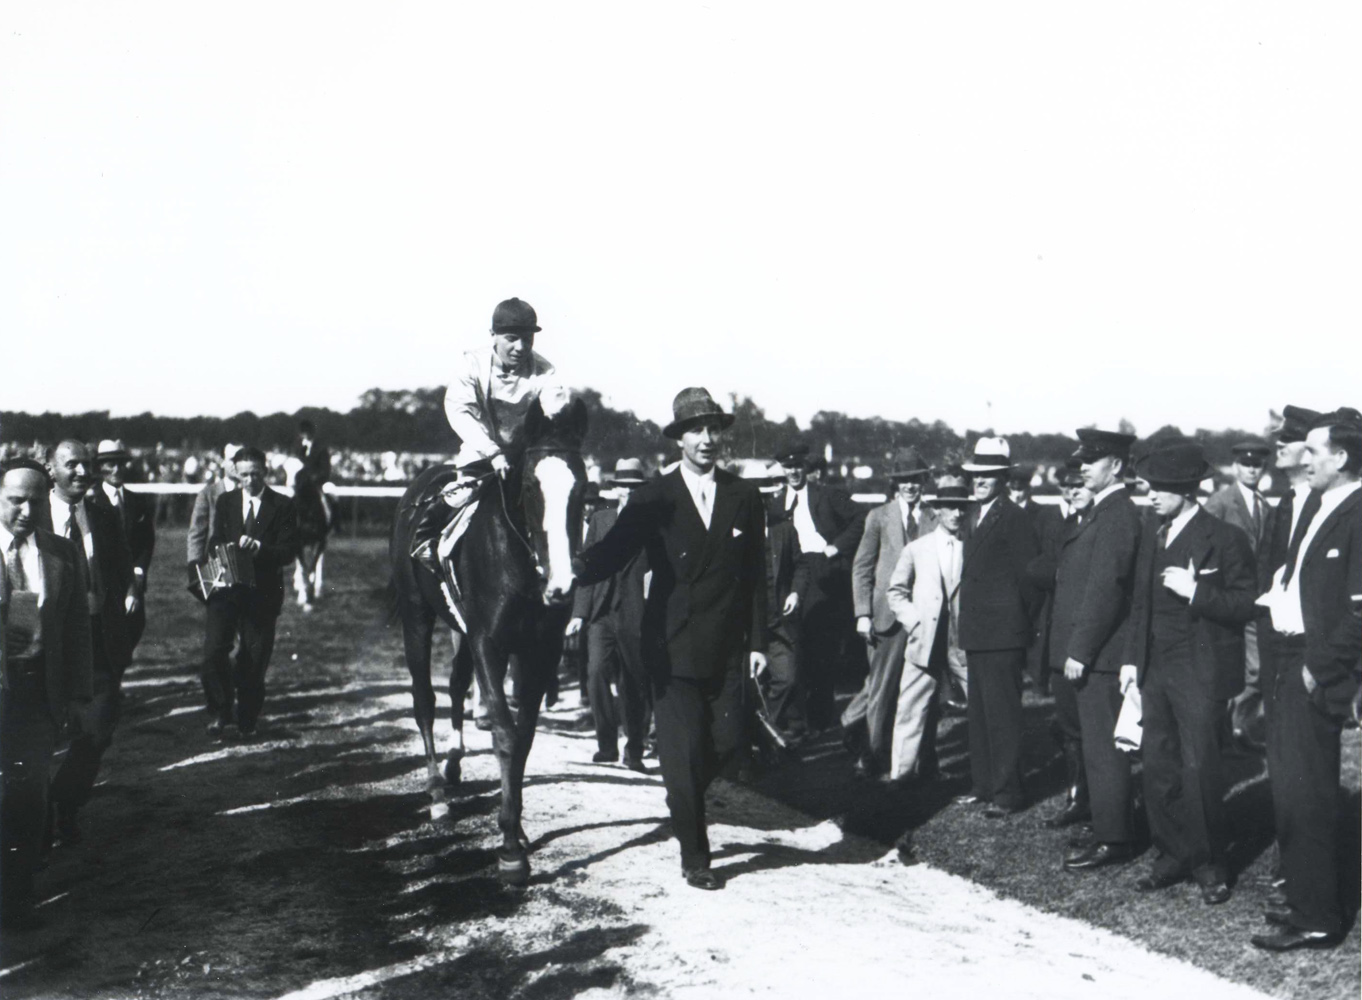 Top Flight (Raymond Workman up) entering the winner's circle with owner C. V. Whitney (Keeneland Library Cook Collection/Museum Collection)